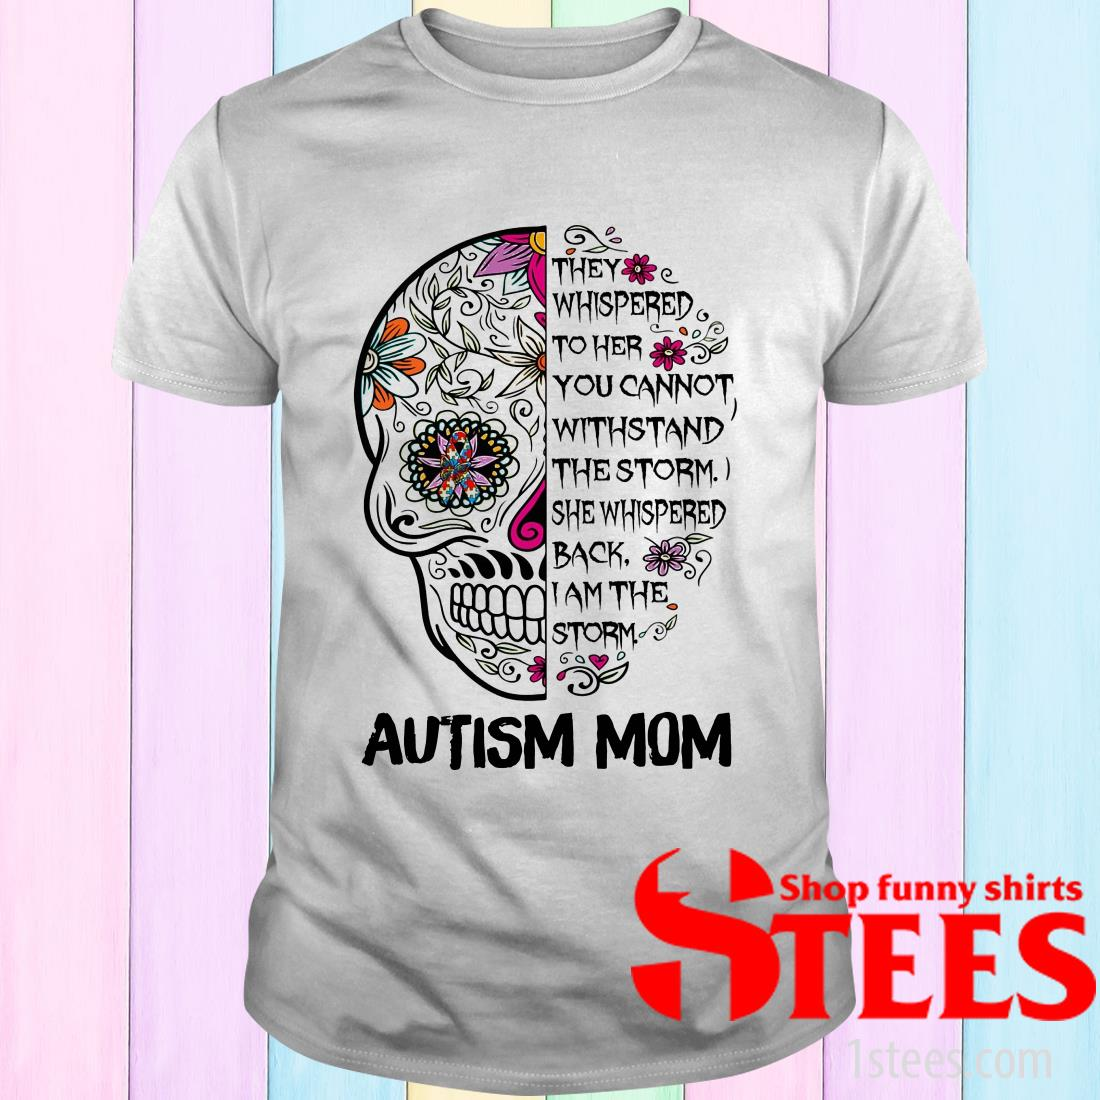 Skull Autism Mom They Whispered To Her You Cannot Withstand The Storm T-Shirt